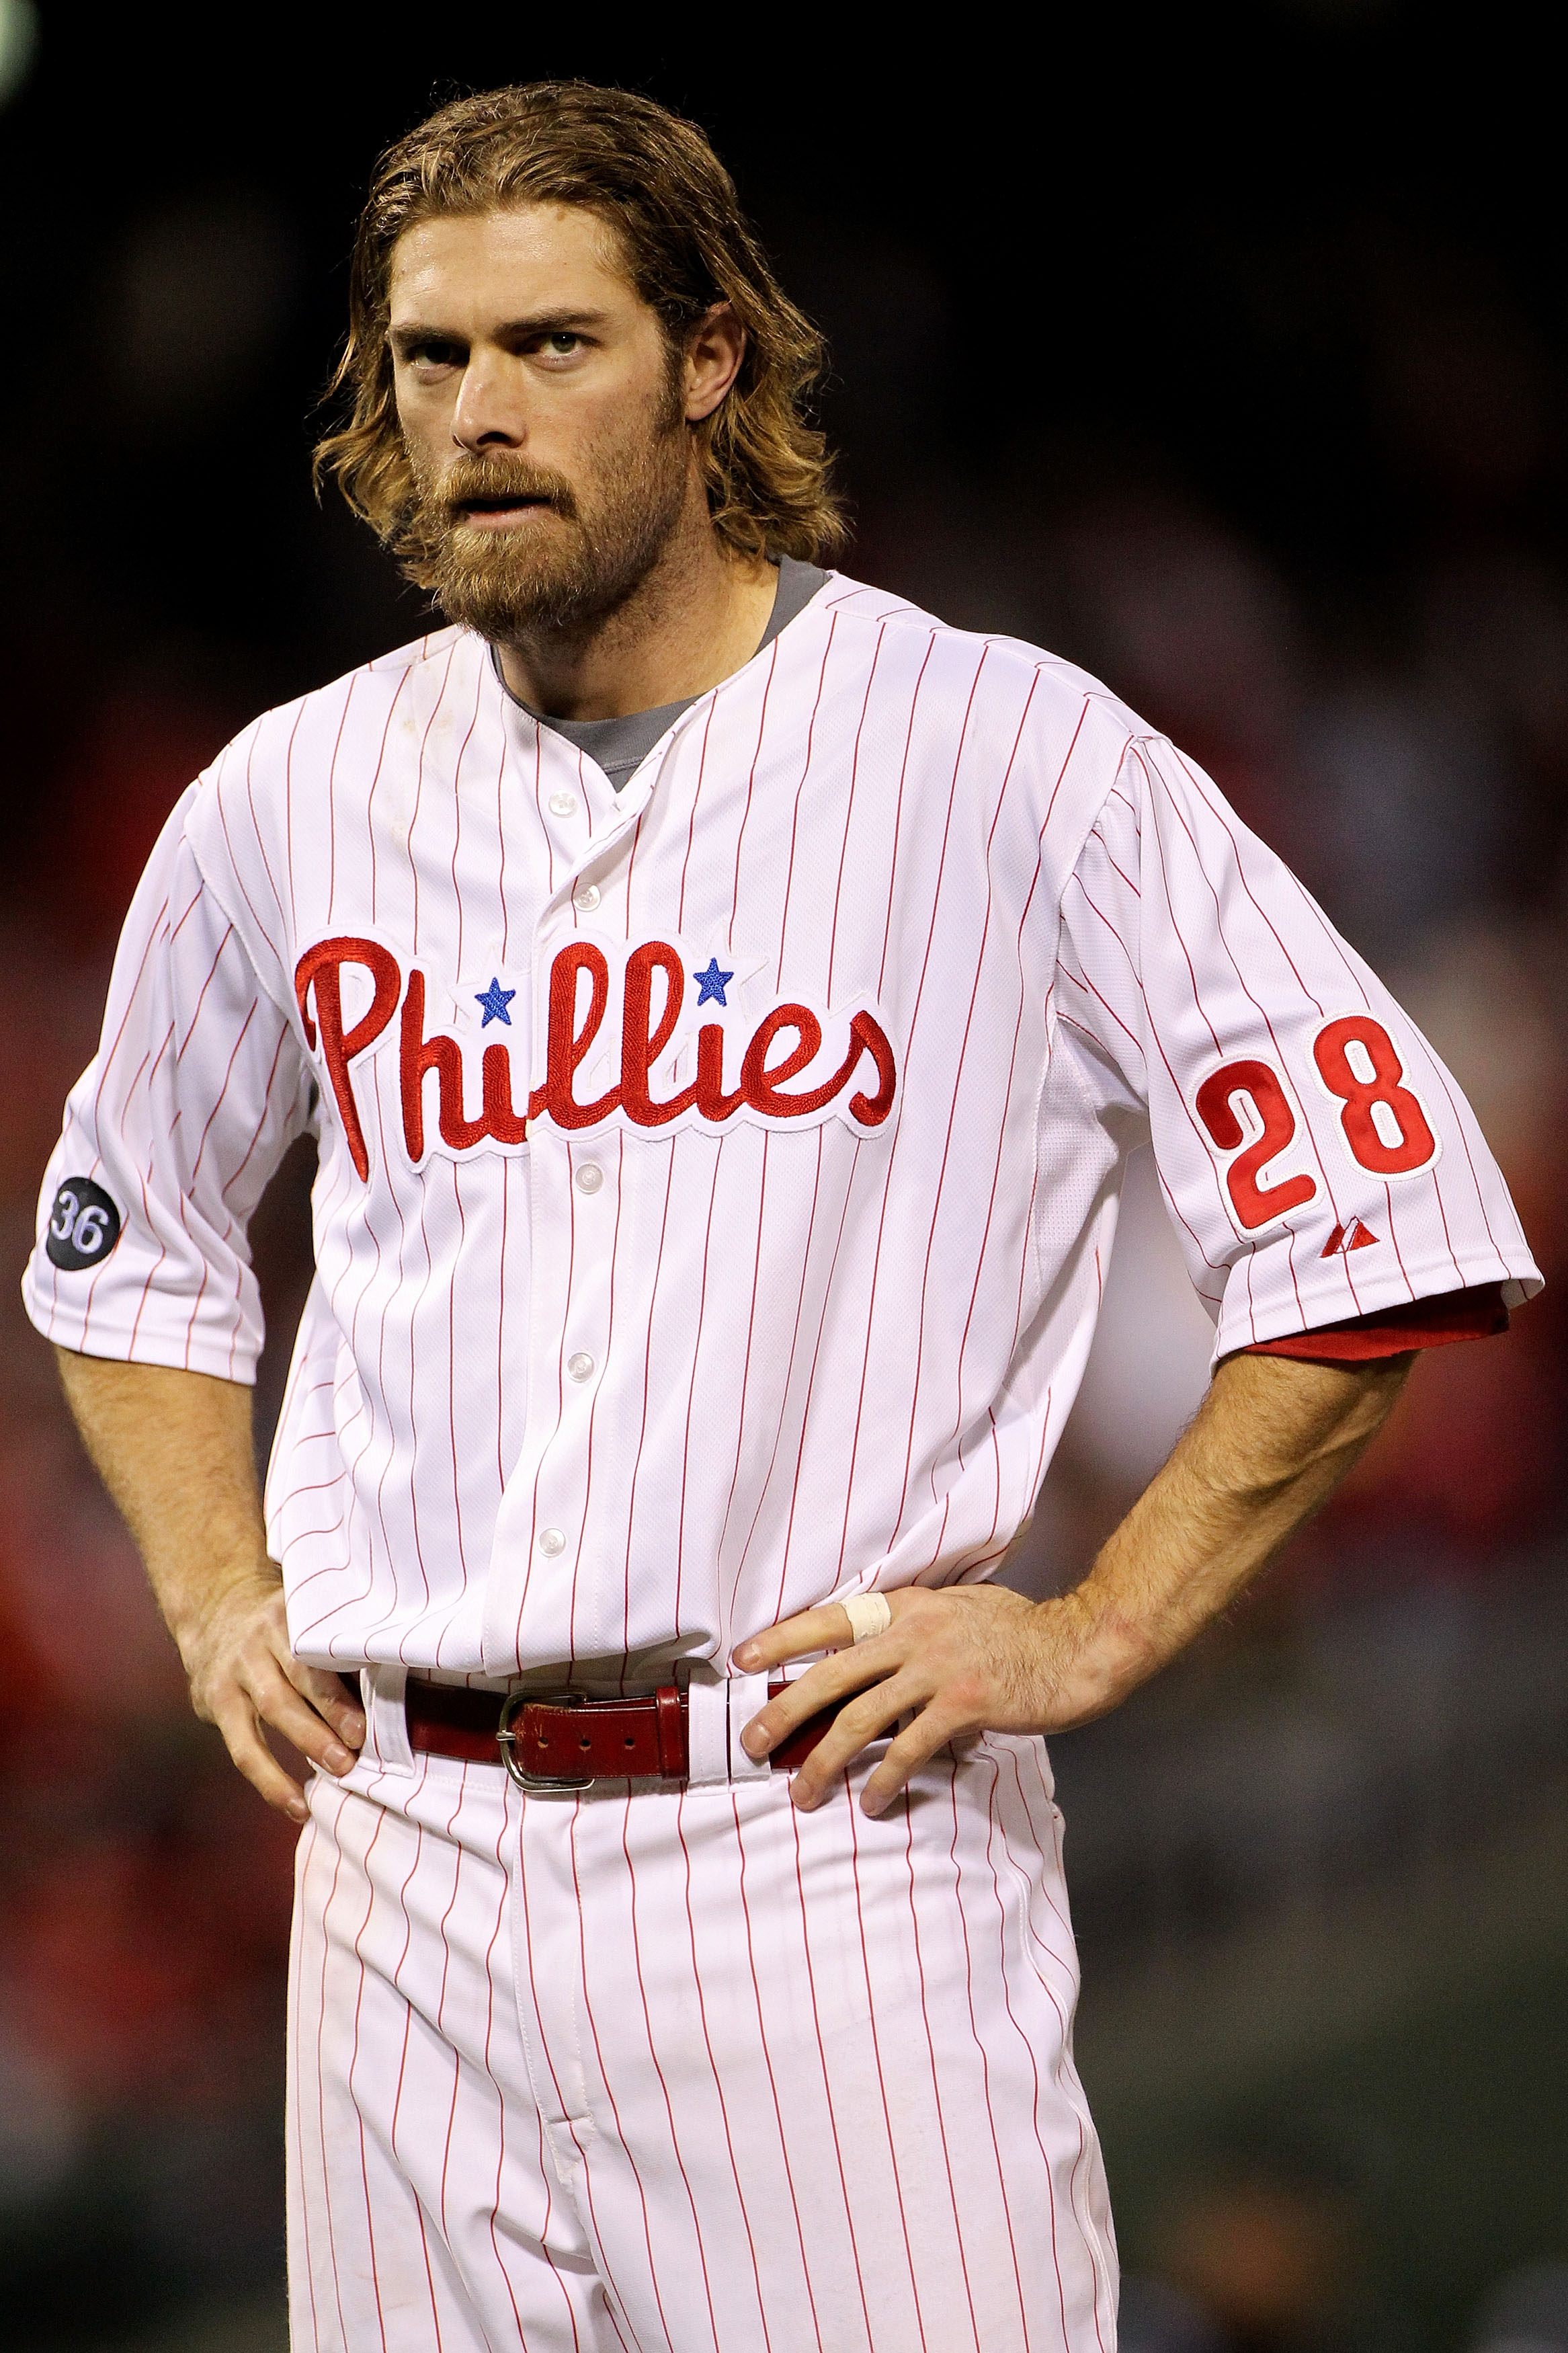 PHILADELPHIA - OCTOBER 23:  Jayson Werth #28 of the Philadelphia Phillies looks on against the San Francisco Giants in Game Six of the NLCS during the 2010 MLB Playoffs at Citizens Bank Park on October 23, 2010 in Philadelphia, Pennsylvania.  (Photo by Do